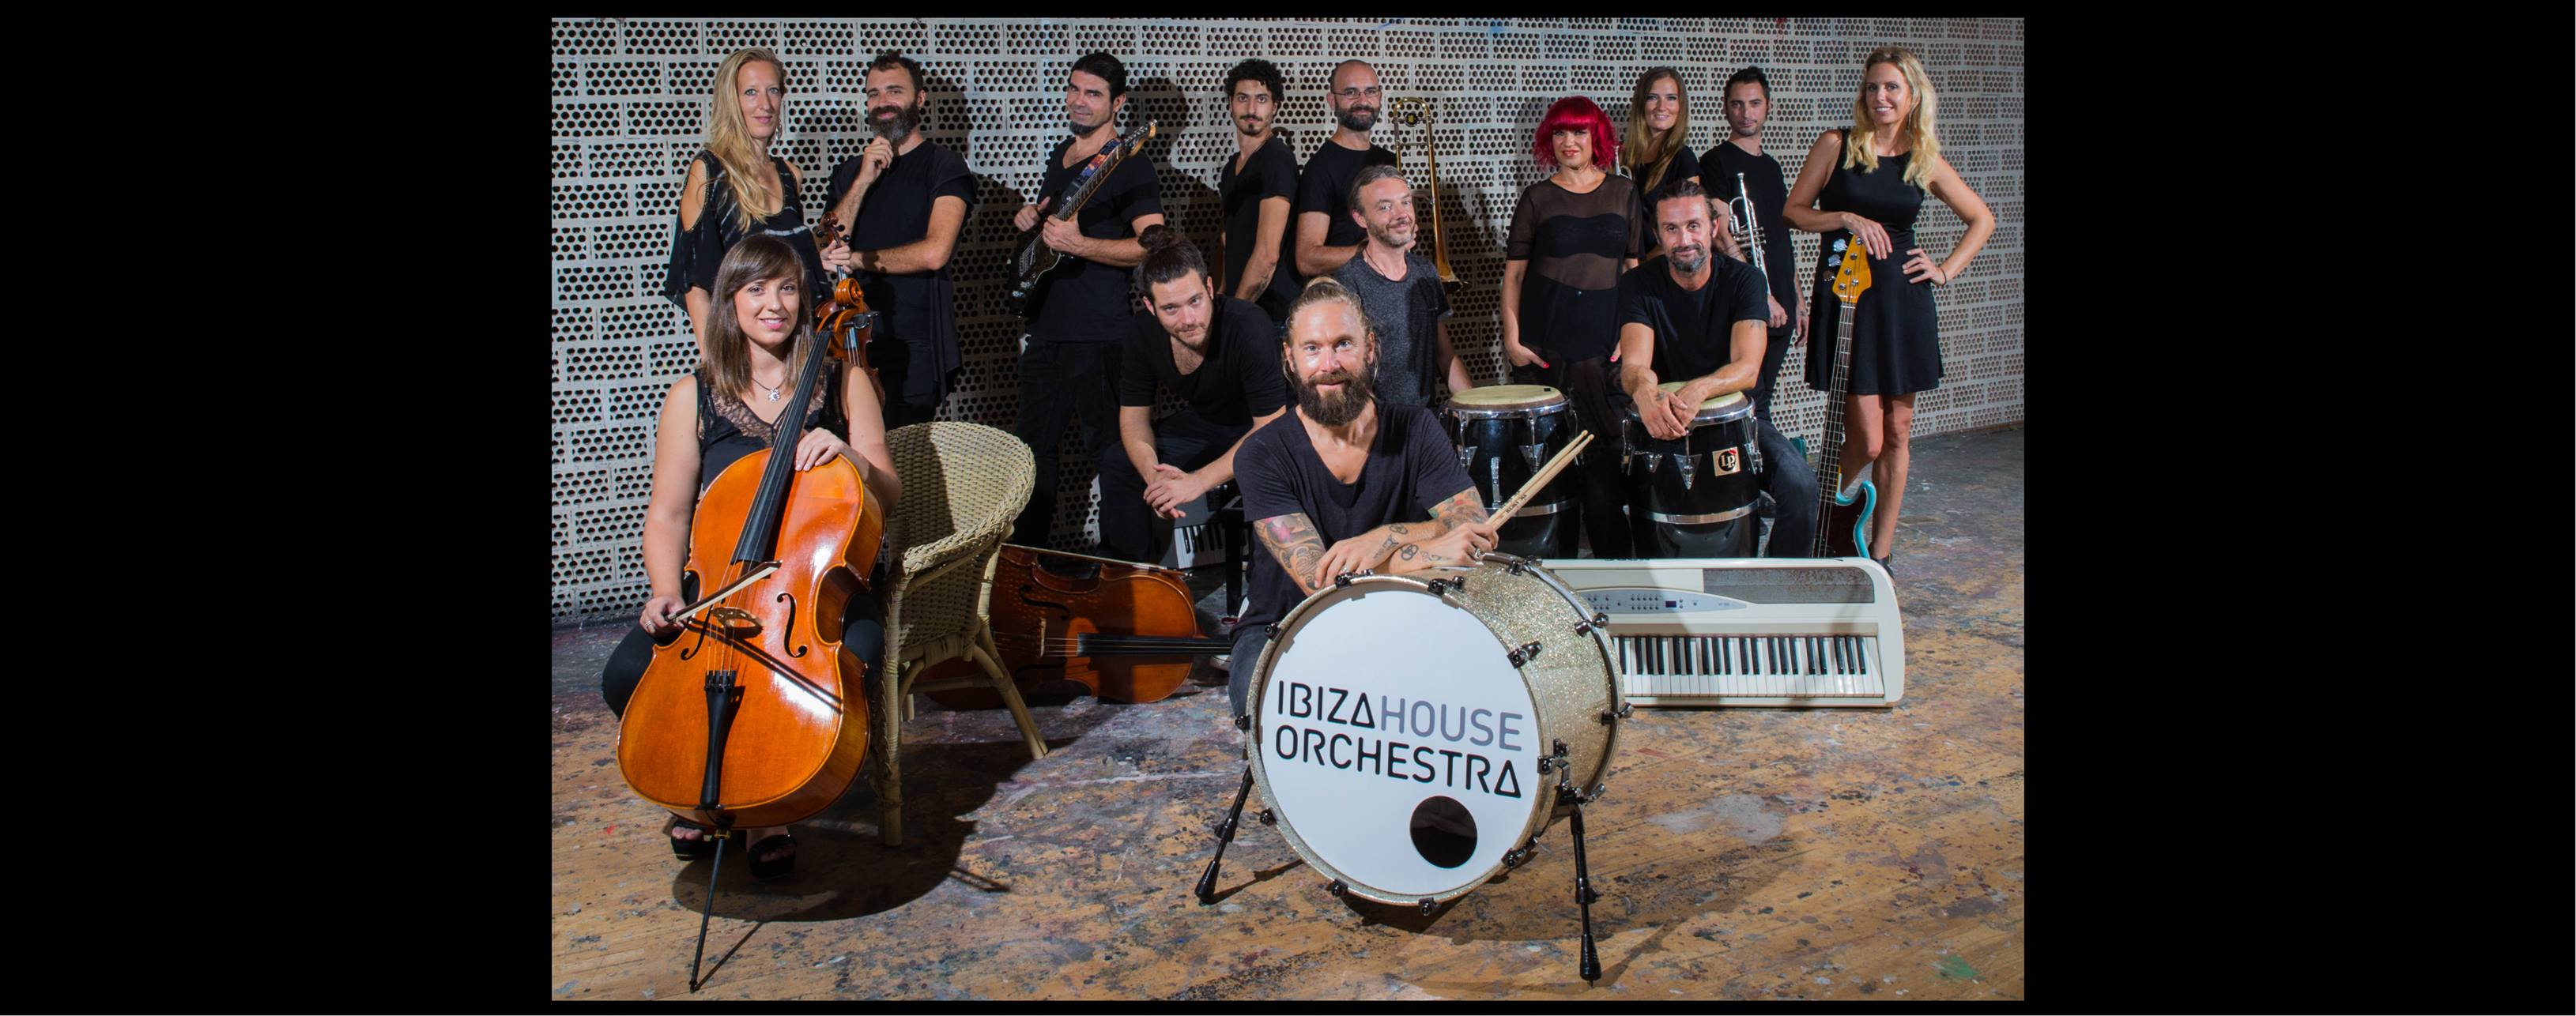 Fiesta musica feat ibiza house orchestra throttle for House music orchestra